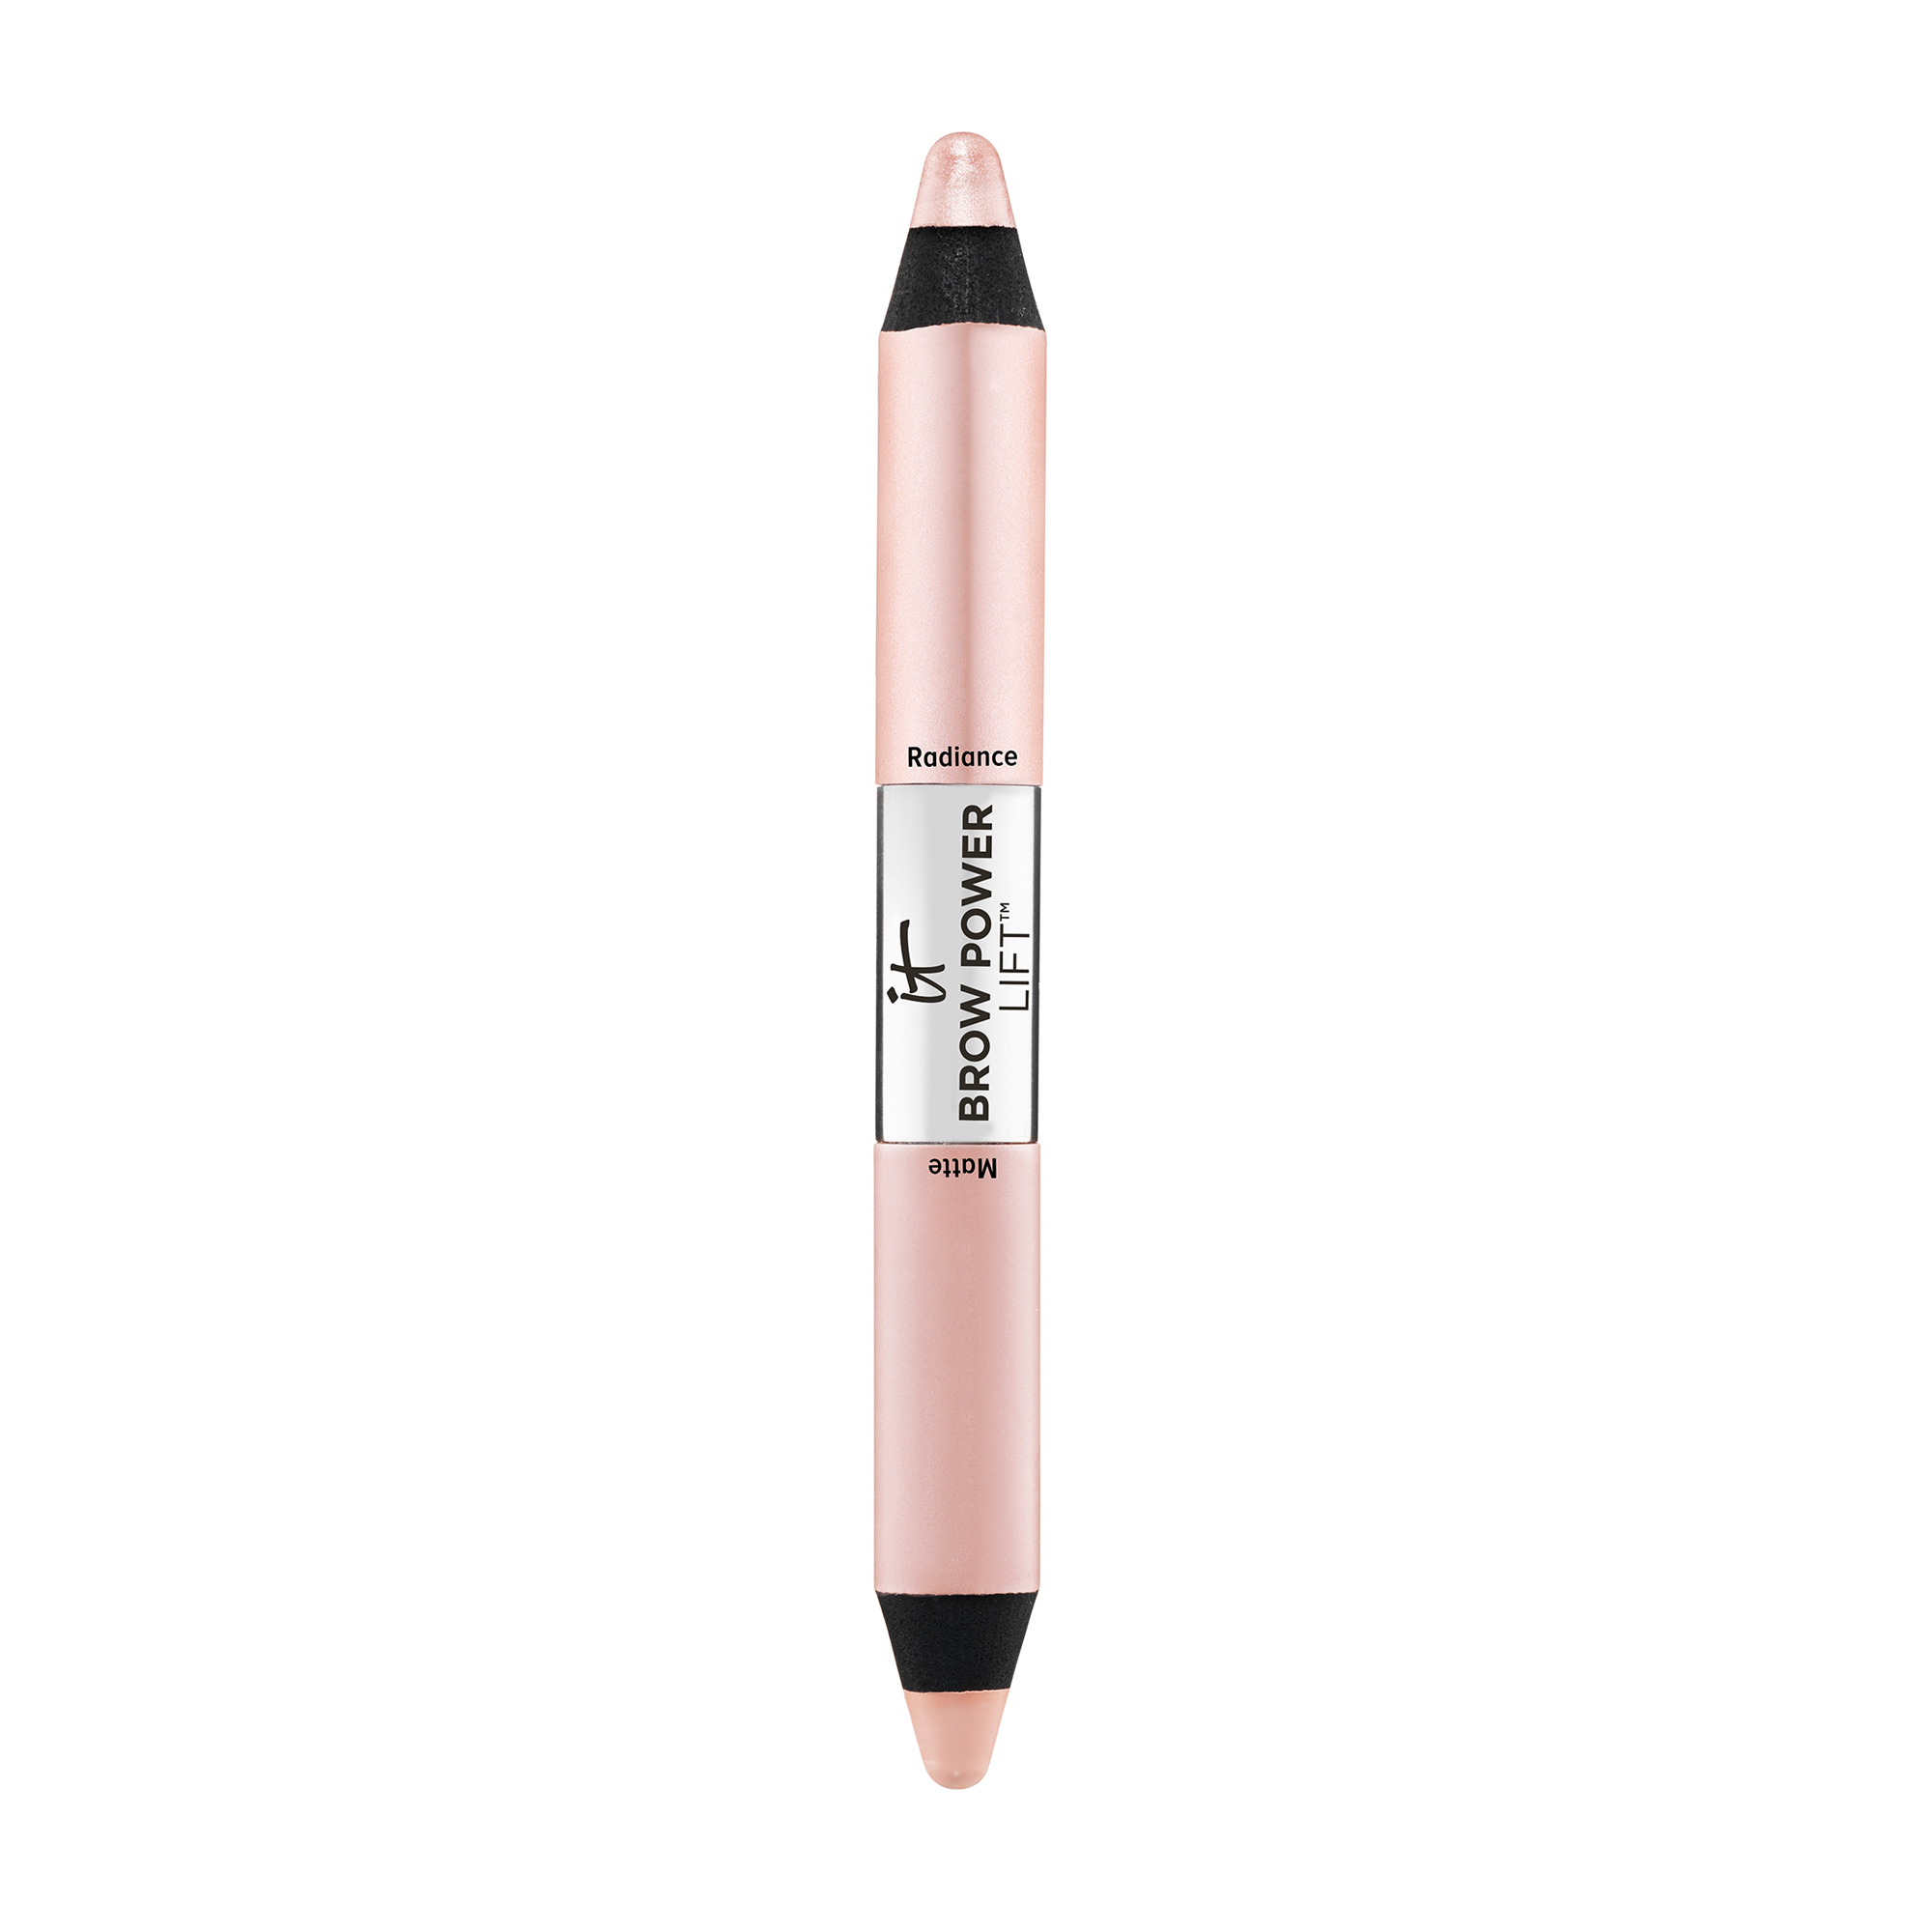 Brow Power Lift™ Highlighting Pencil Matte/Radiance